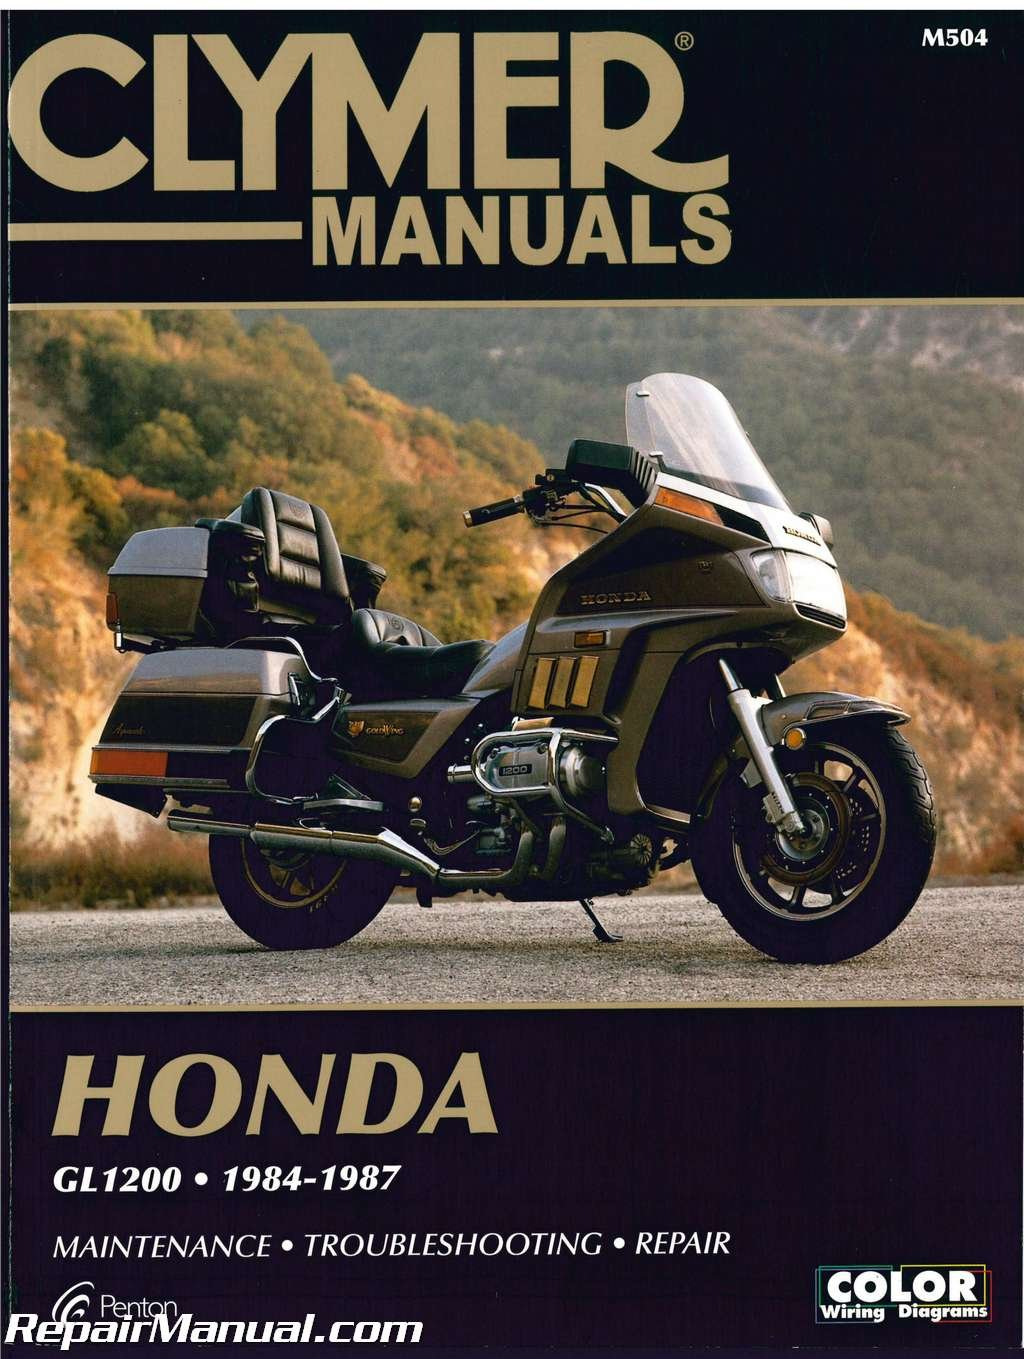 Honda Goldwing 1200 Wiring Diagram Electrical Diagrams 1984 Gl1200 Motorcycle Residential Cb250